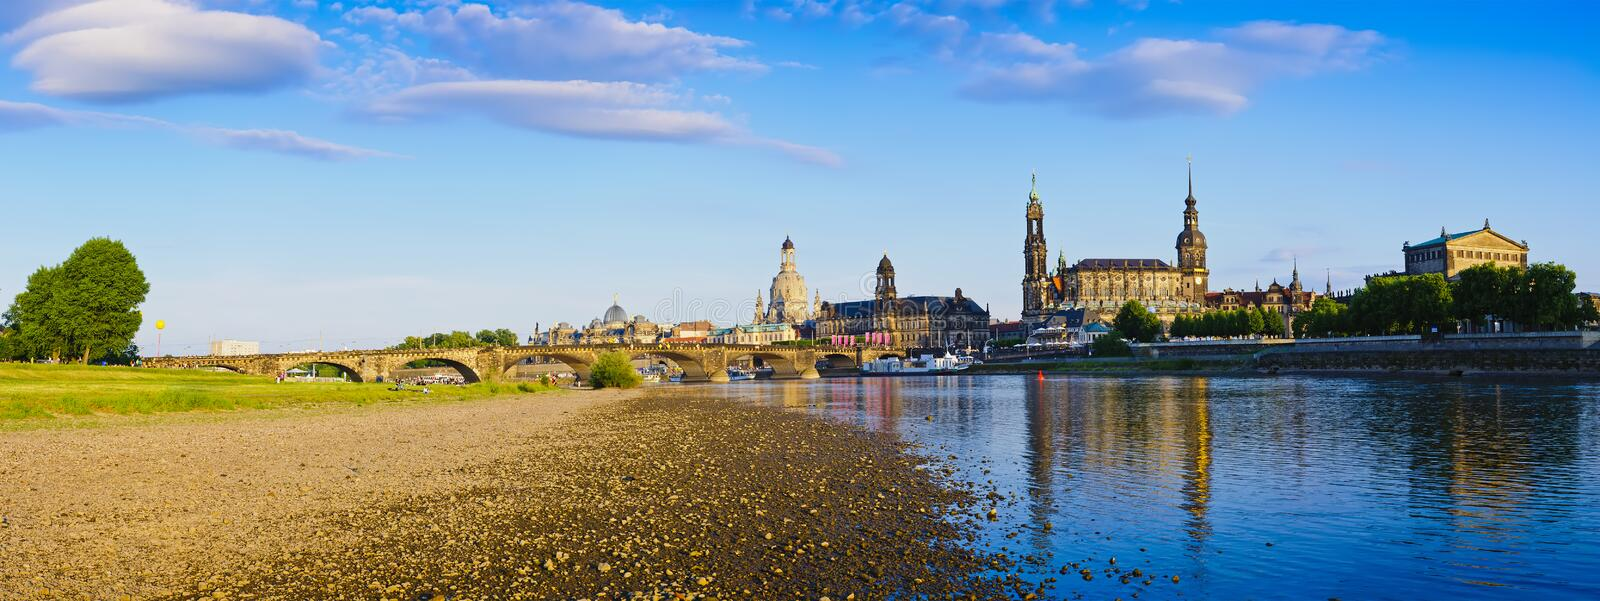 Download Dresden and river elbe stock image. Image of reflection - 19814109